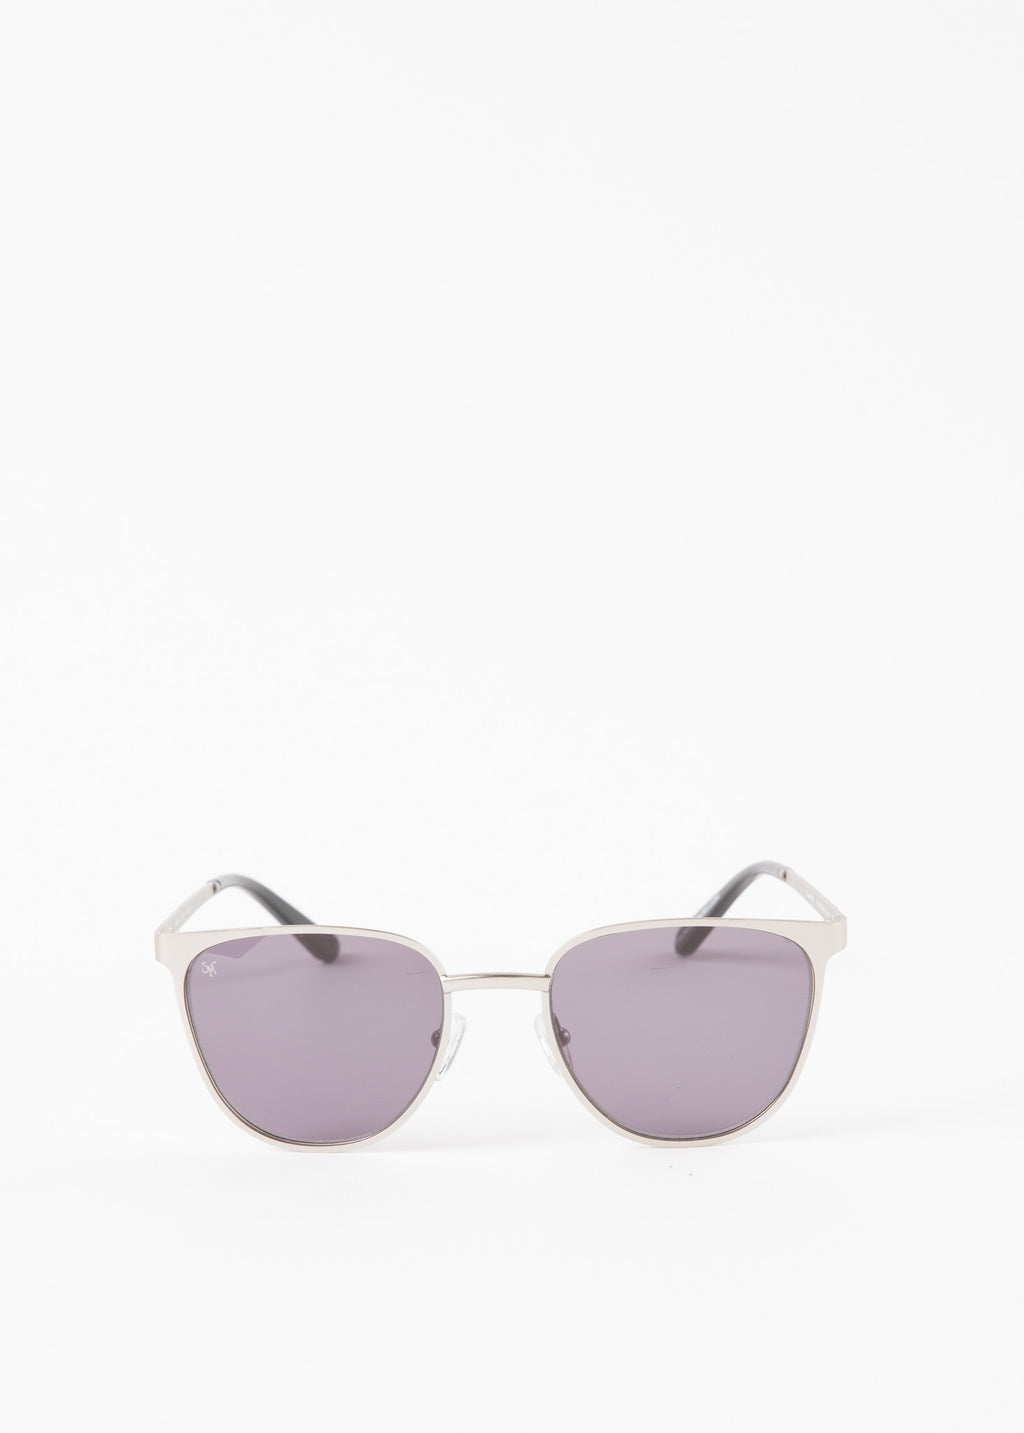 Money Sunglasses